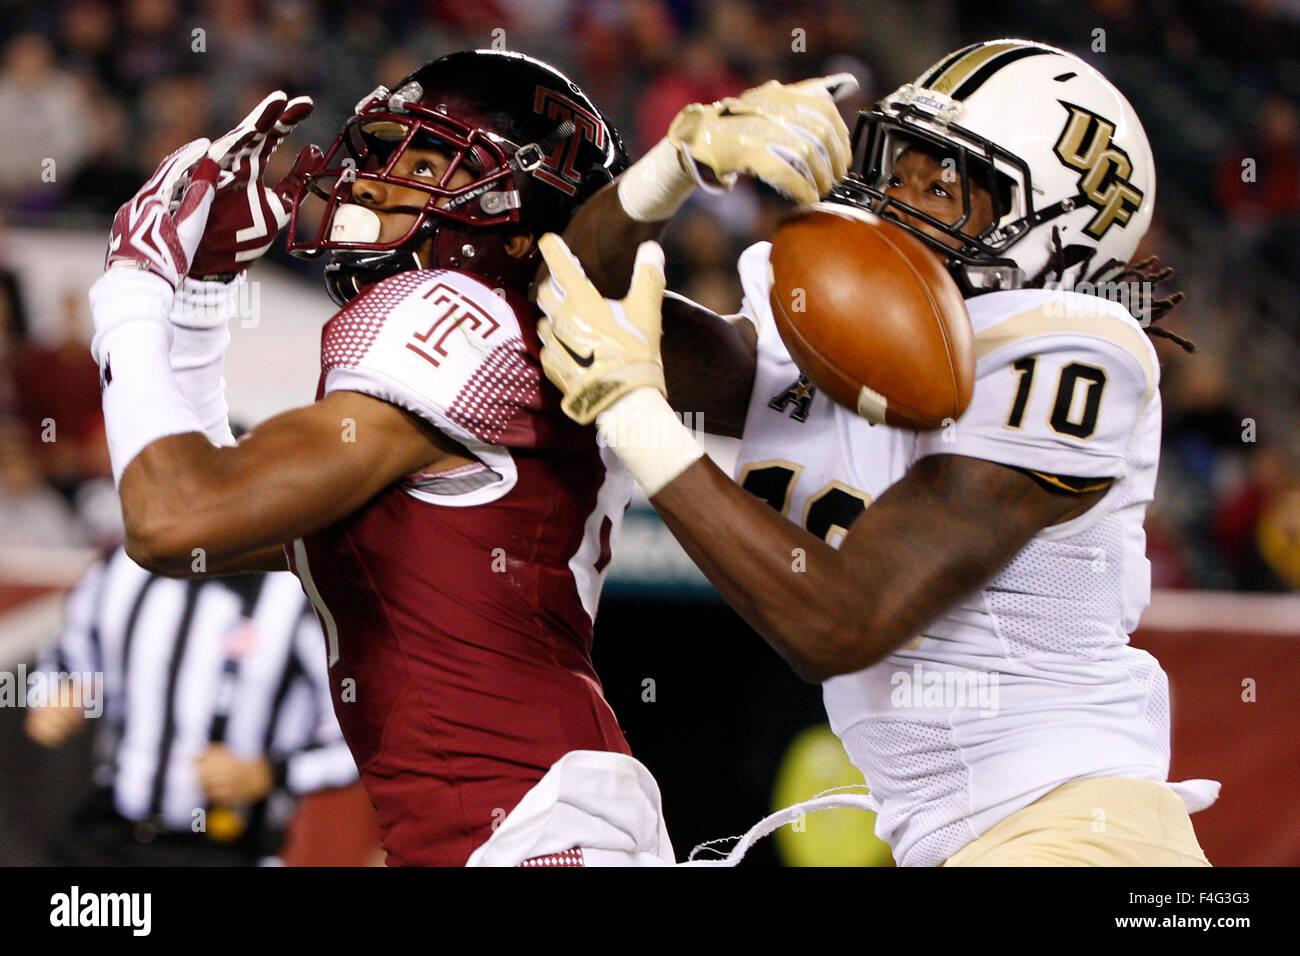 philadelphia, pennsylvania, usa. 17th oct, 2015. ucf knights stock